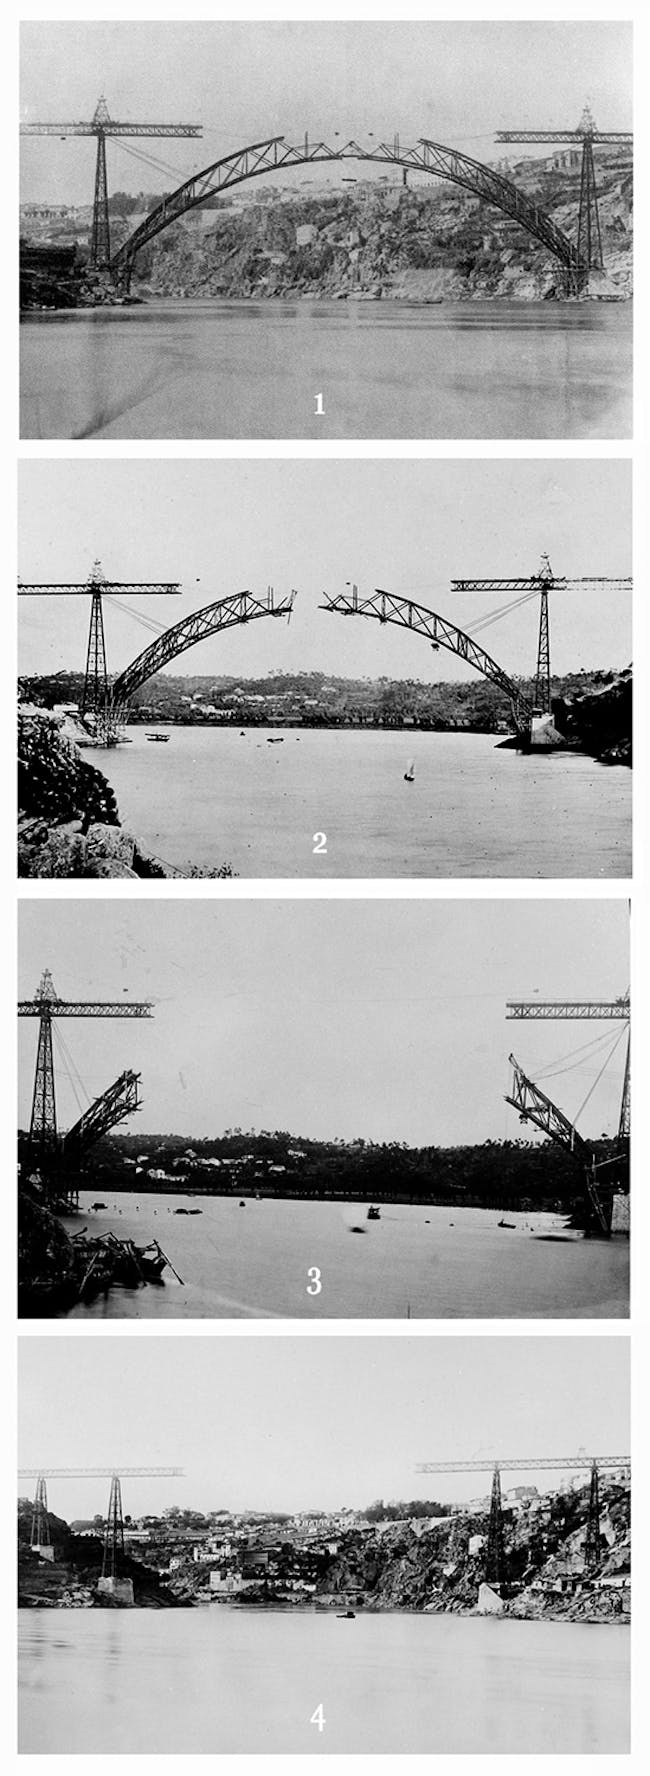 Scheme of the disassembly of the bridge based on photographs of the bridge's construction. Image attributed to Emilio Biel. Image courtesy of Ana Laureano Alves.